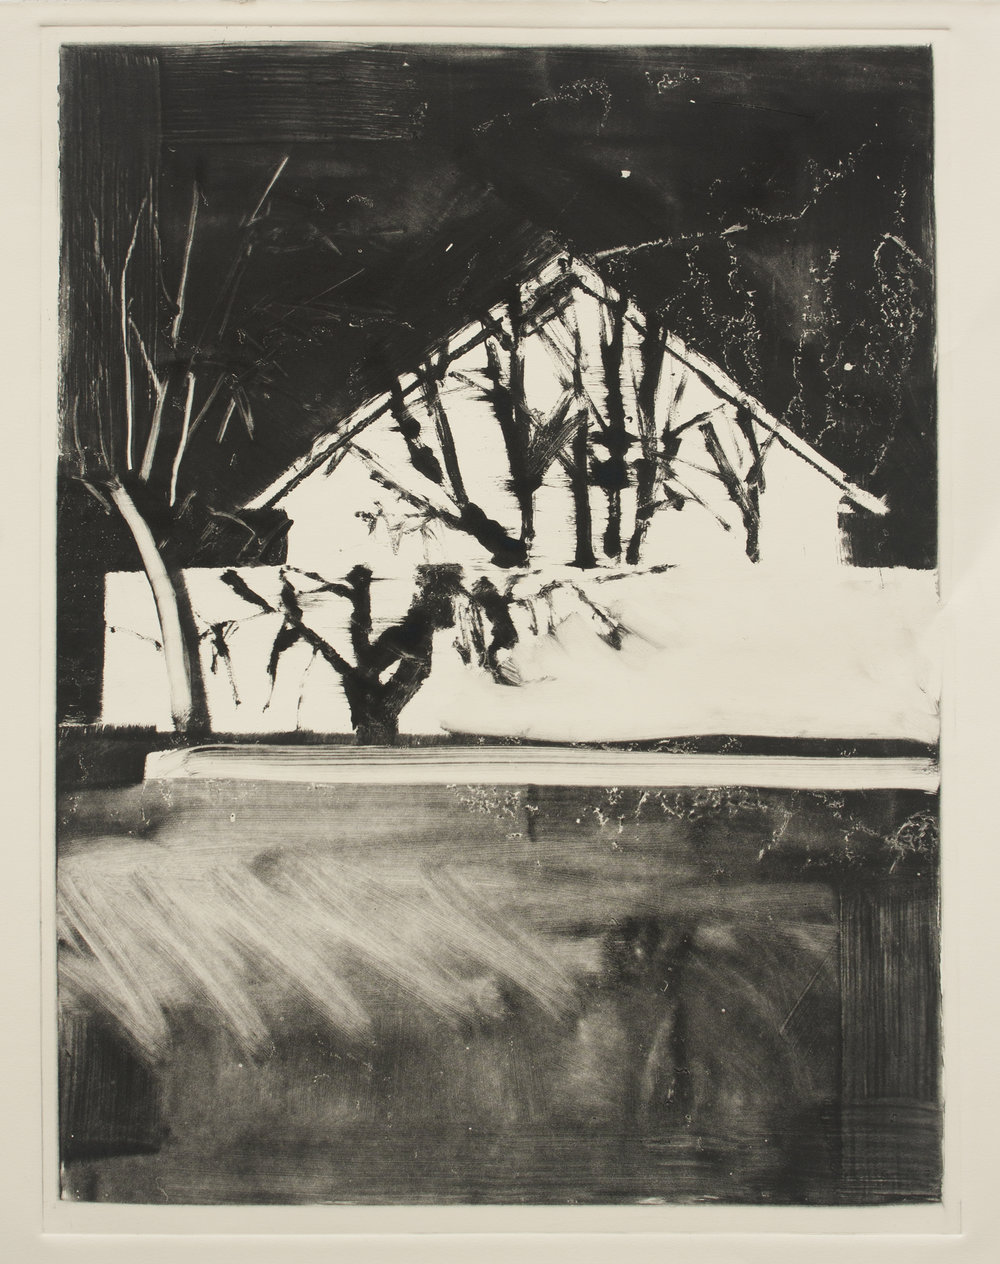 Monotype by Visiting Artist Nathan Zeidman - Spring 2014